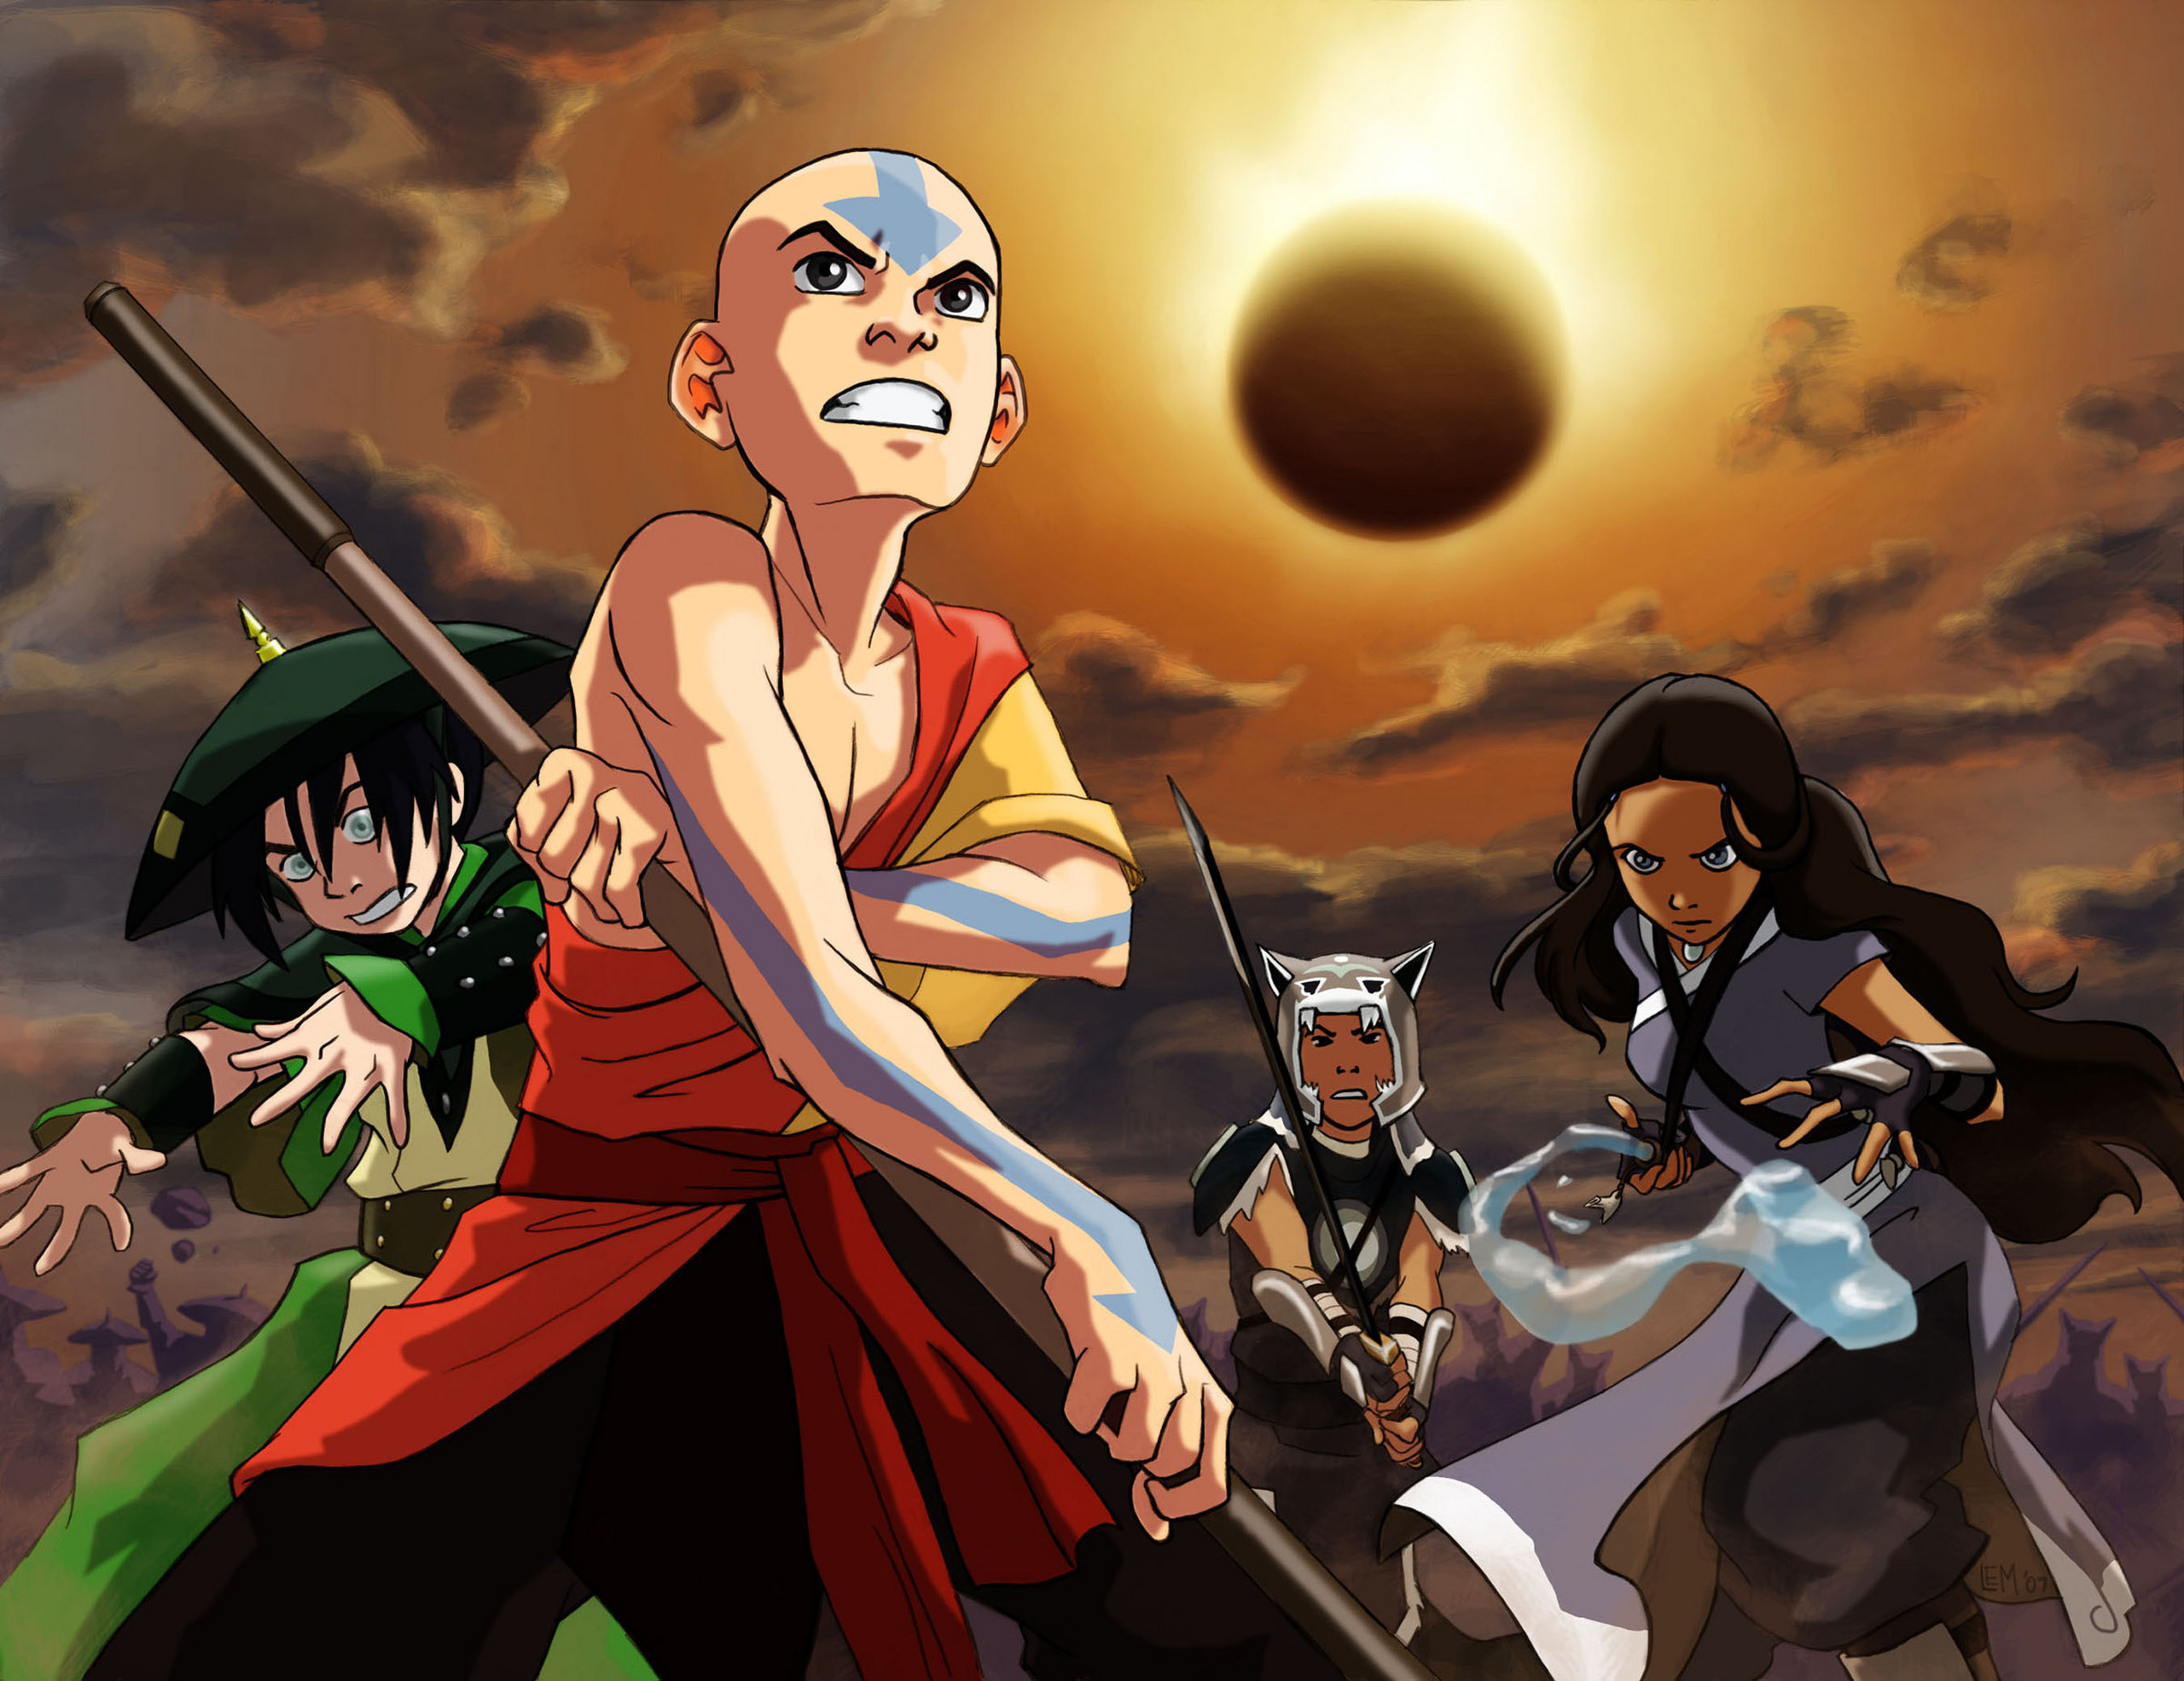 Avatar Aang - Avatar Aang Photo (31177493) - Fanpop: www.fanpop.com/clubs/avatar-aang/images/31177493/title/avatar-aang...